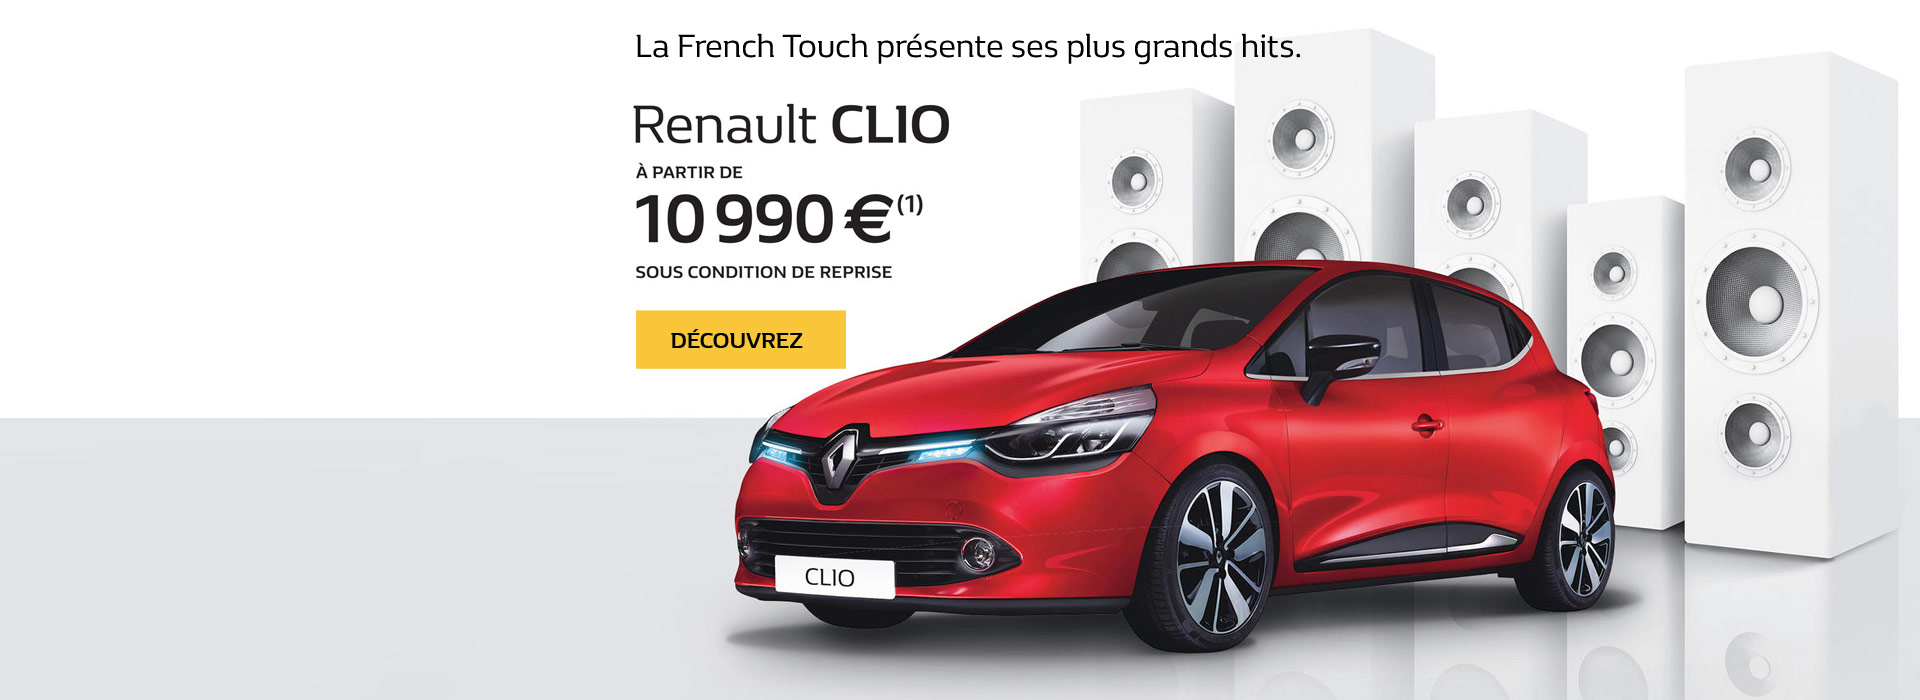 renault clio renault chambery. Black Bedroom Furniture Sets. Home Design Ideas